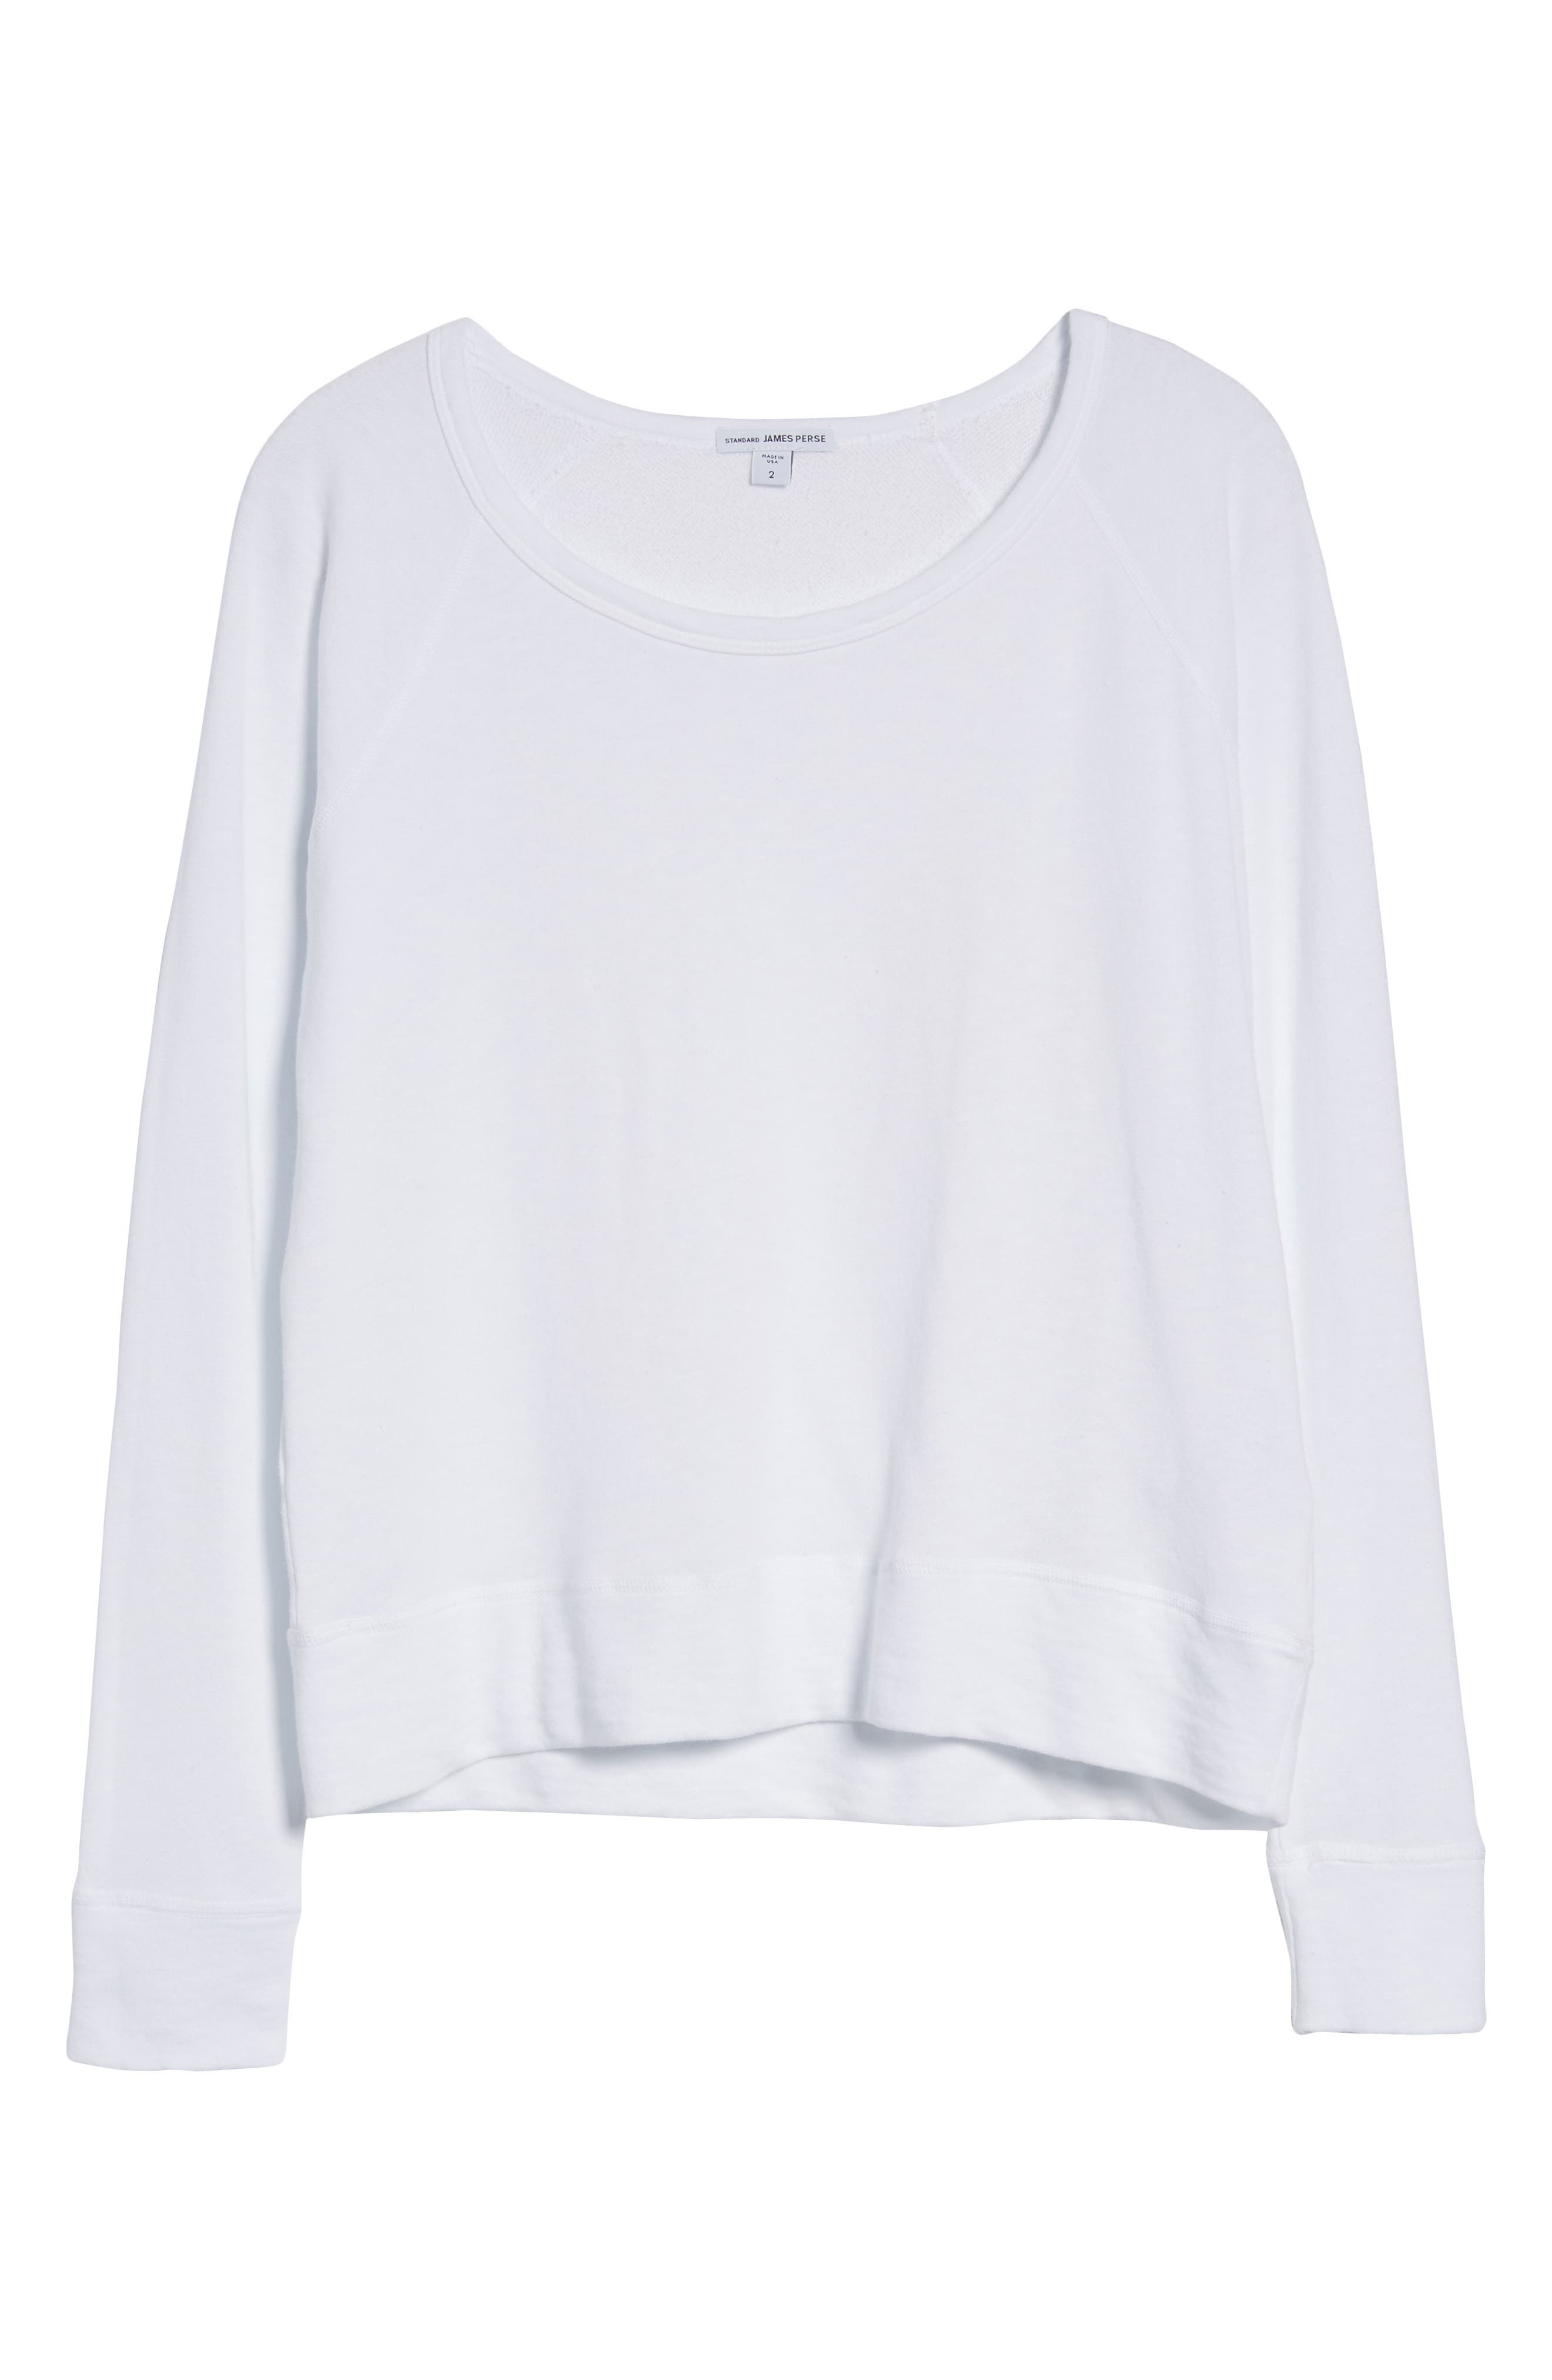 JAMES PERSE,                             Classic Raglan Sweatshirt,                             Alternate thumbnail 6, color,                             100